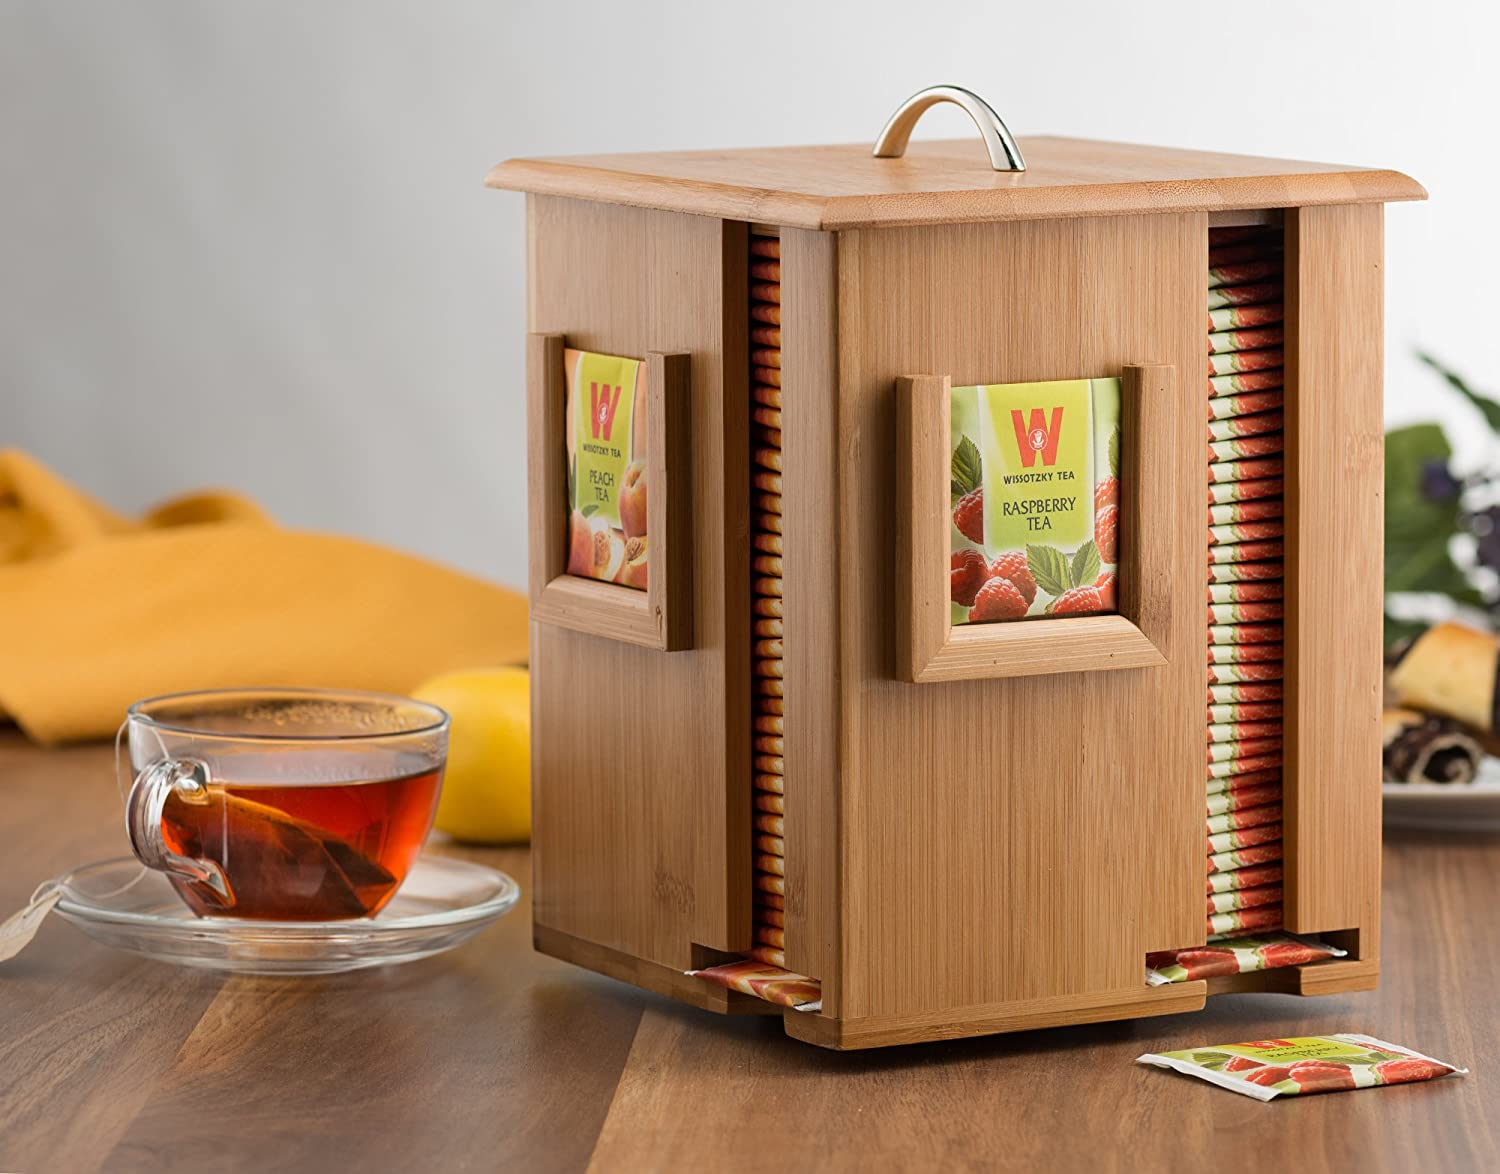 Bamboo Rotating Tea Holder Organizer - Wood Carousel Spinning Tea Storage Box - Organize 160 Tea Bags, 4 Compartments 40 Tea Bags in Each - Perfect Valentine's Day Gift